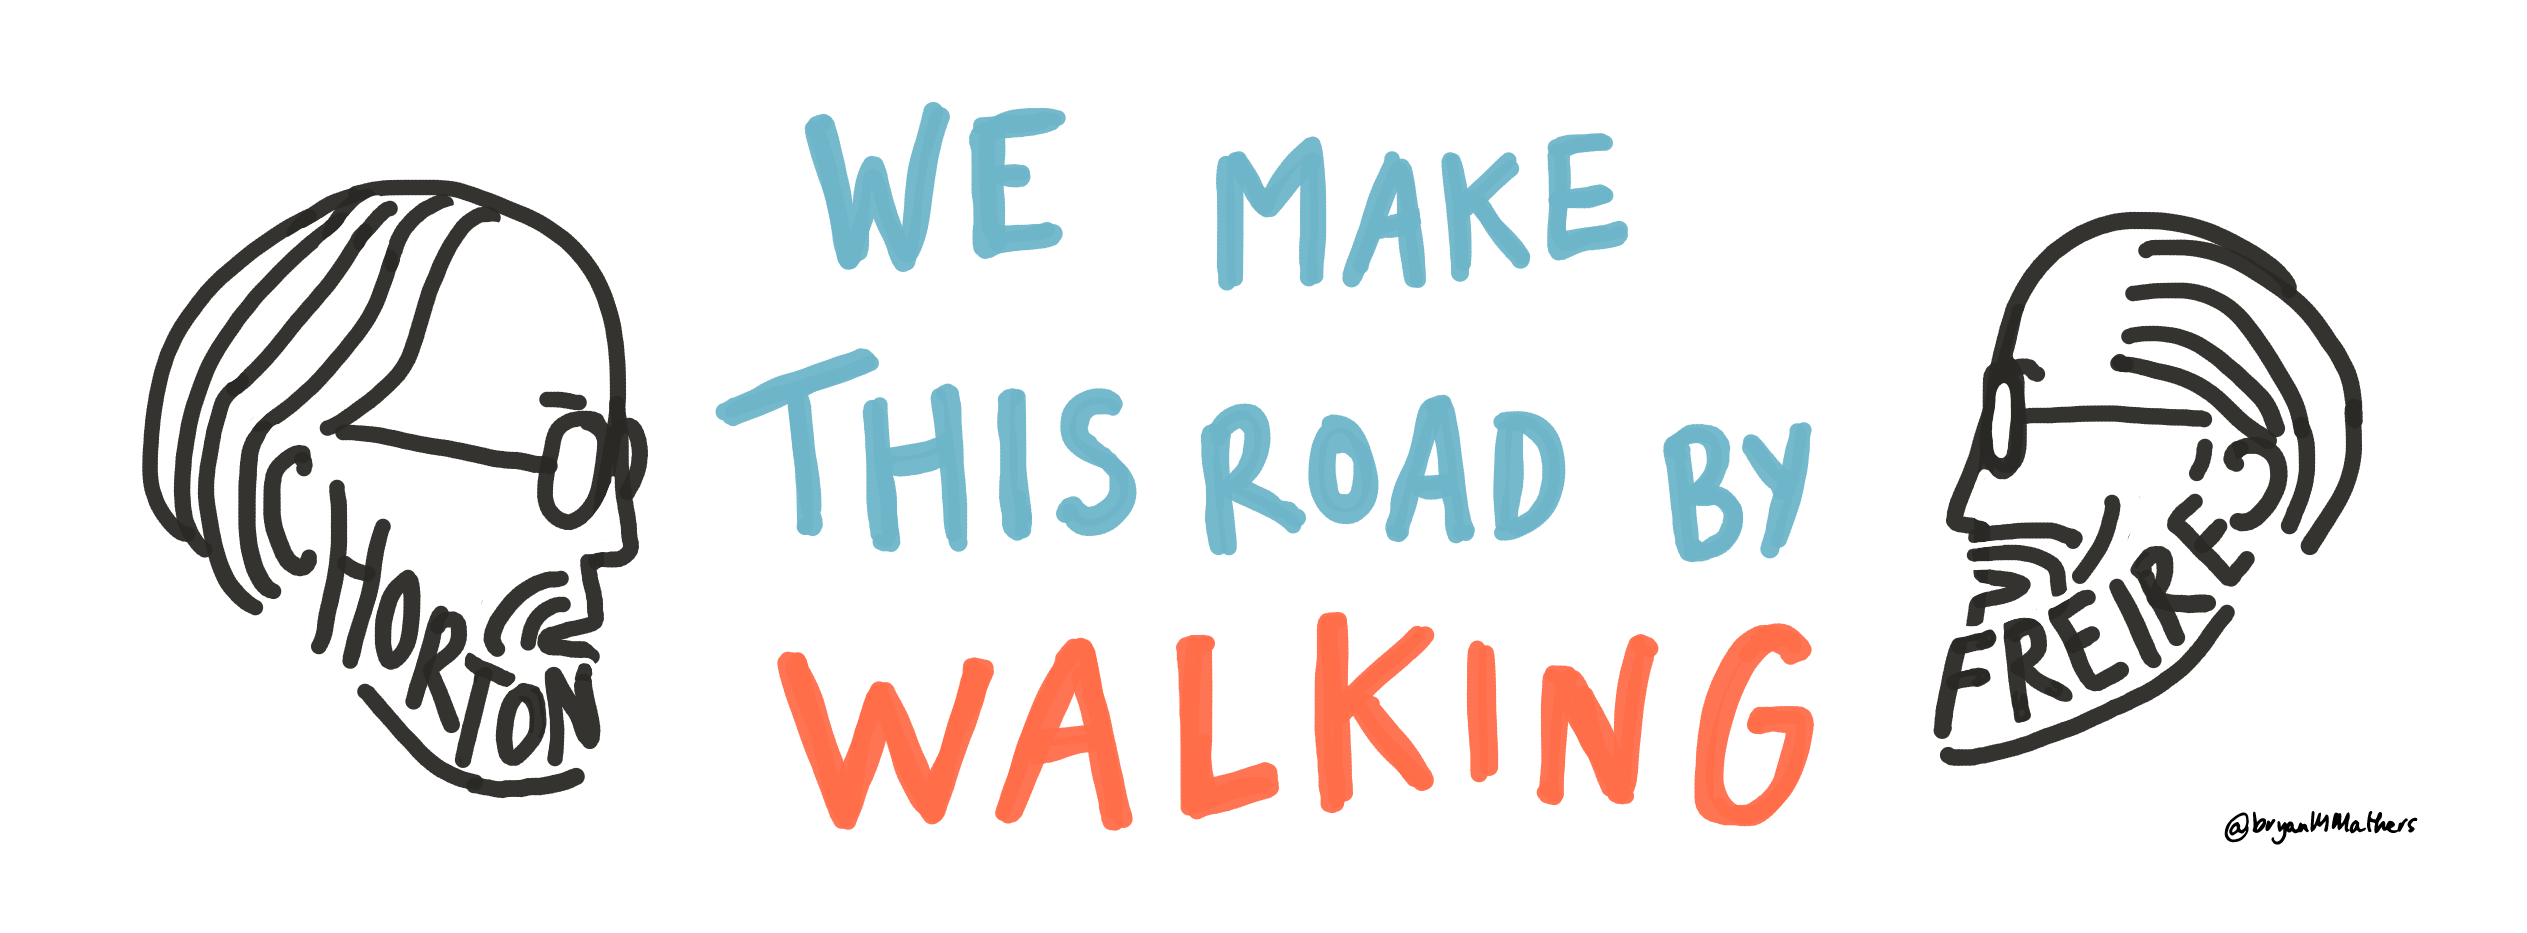 We make this road by walking